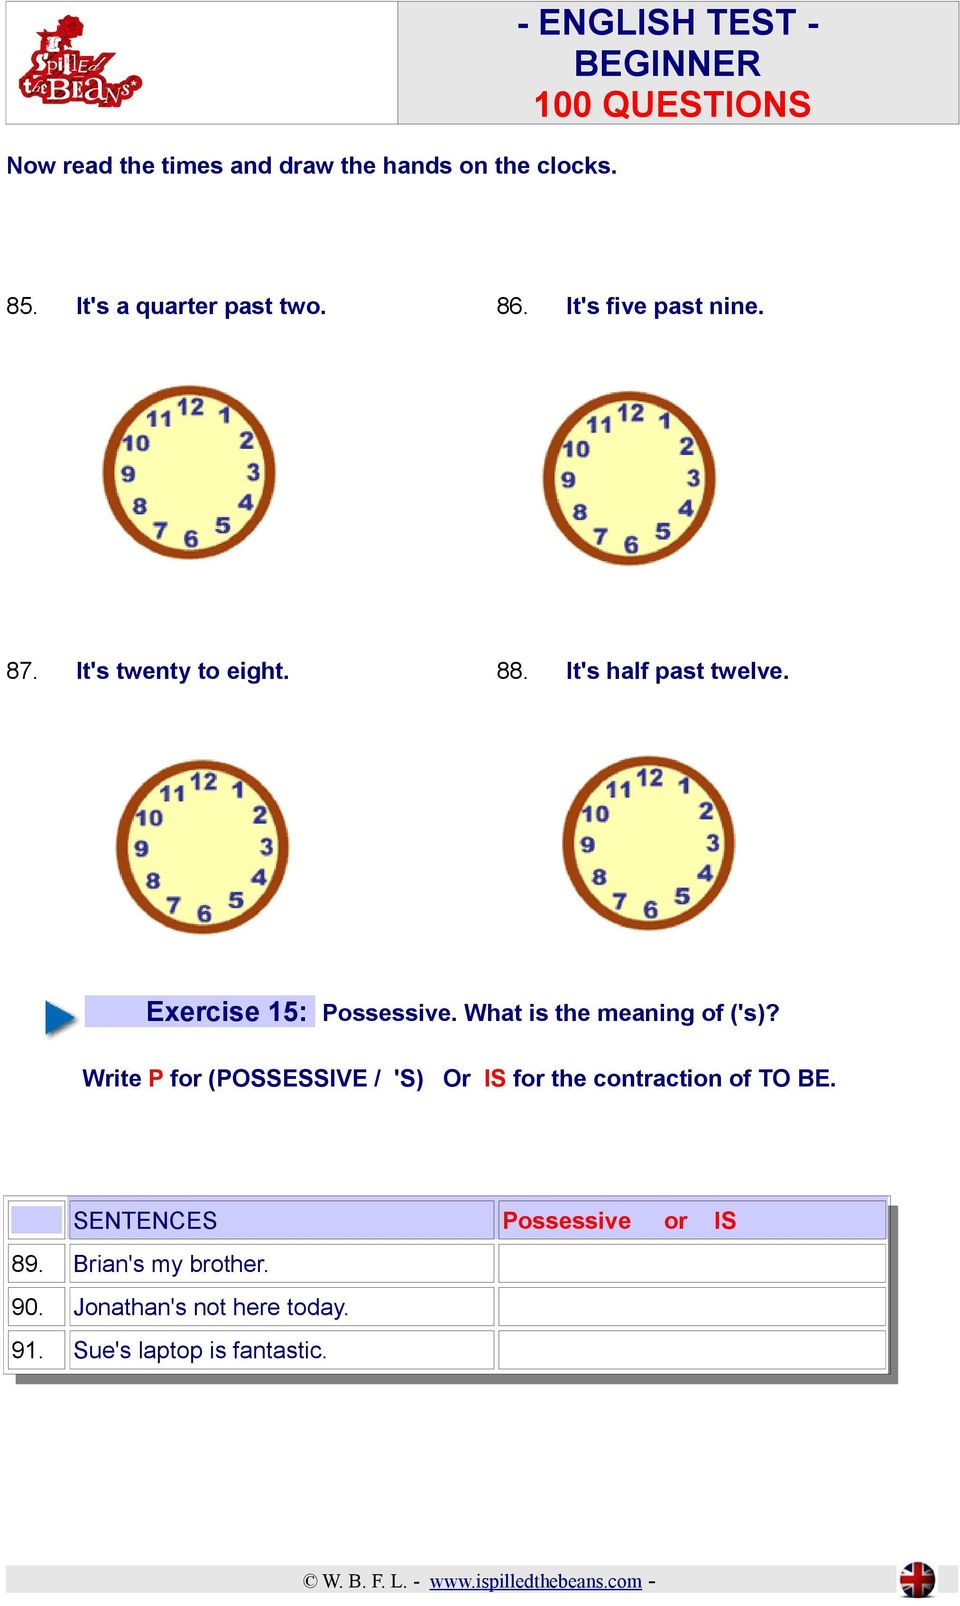 What is the meaning of ('s)? Write P for (POSSESSIVE /